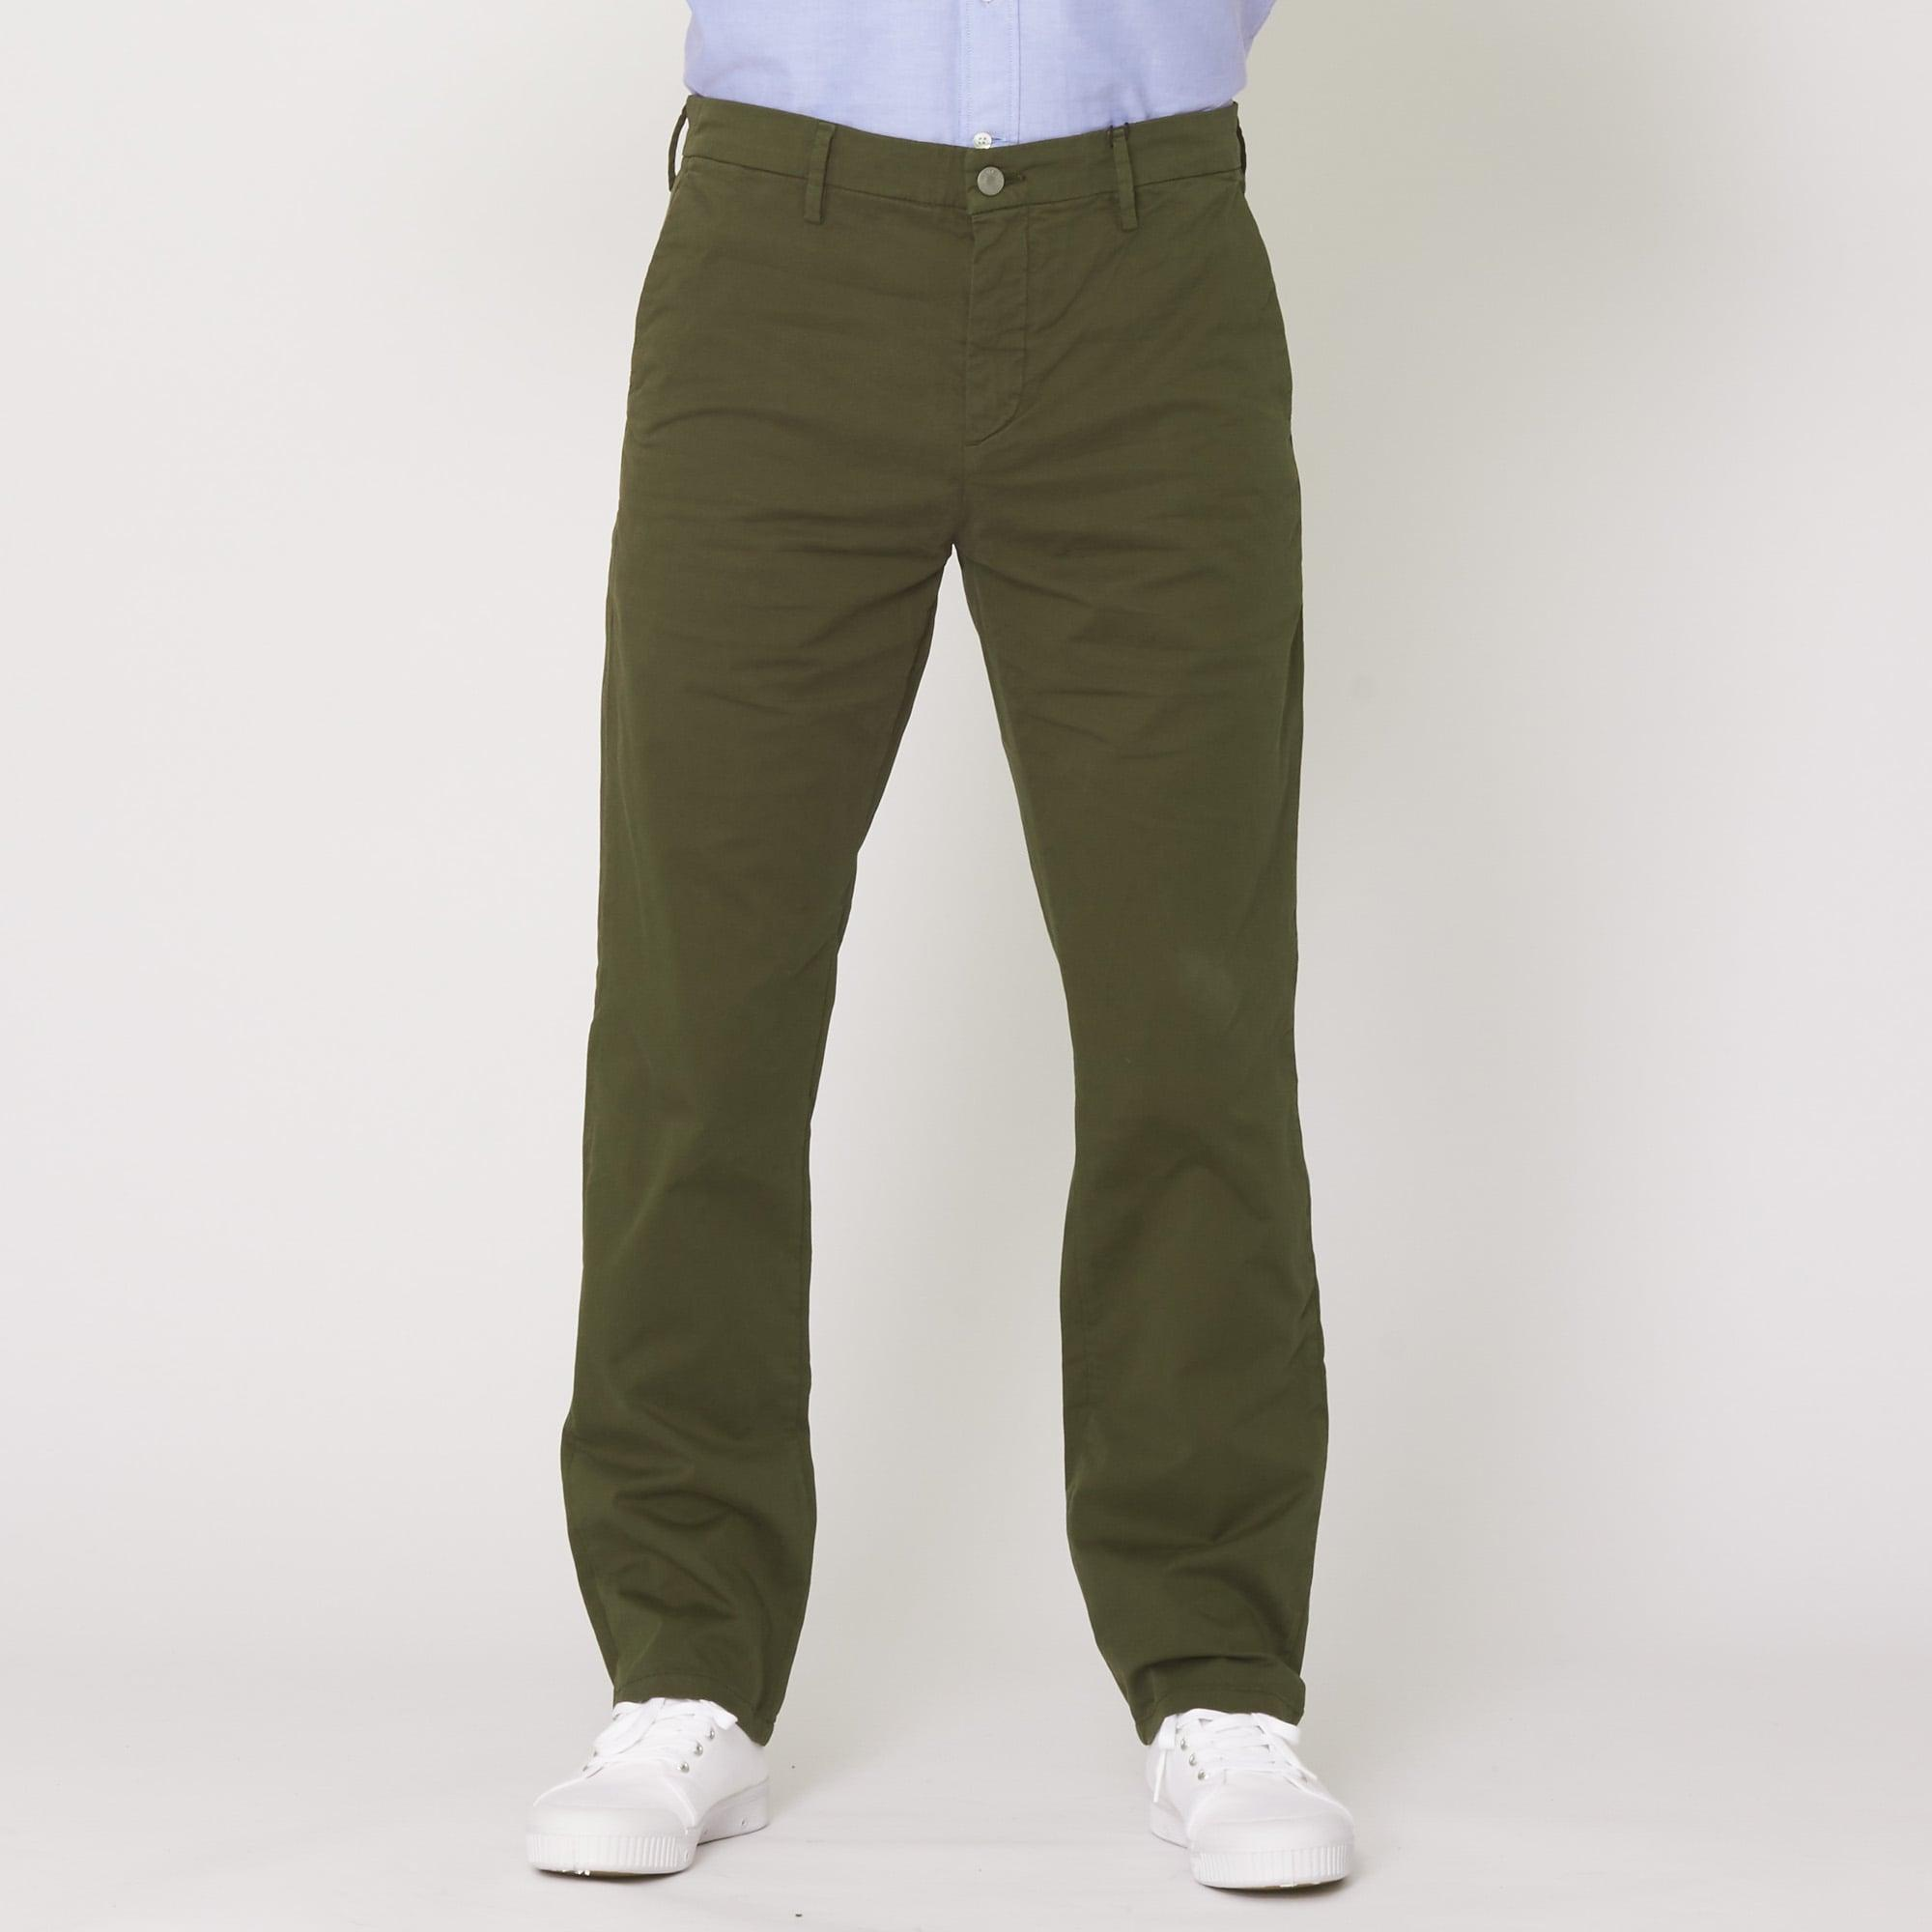 NN07 Cotton Dark Army Fred Trousers 1004-315 in Green for Men